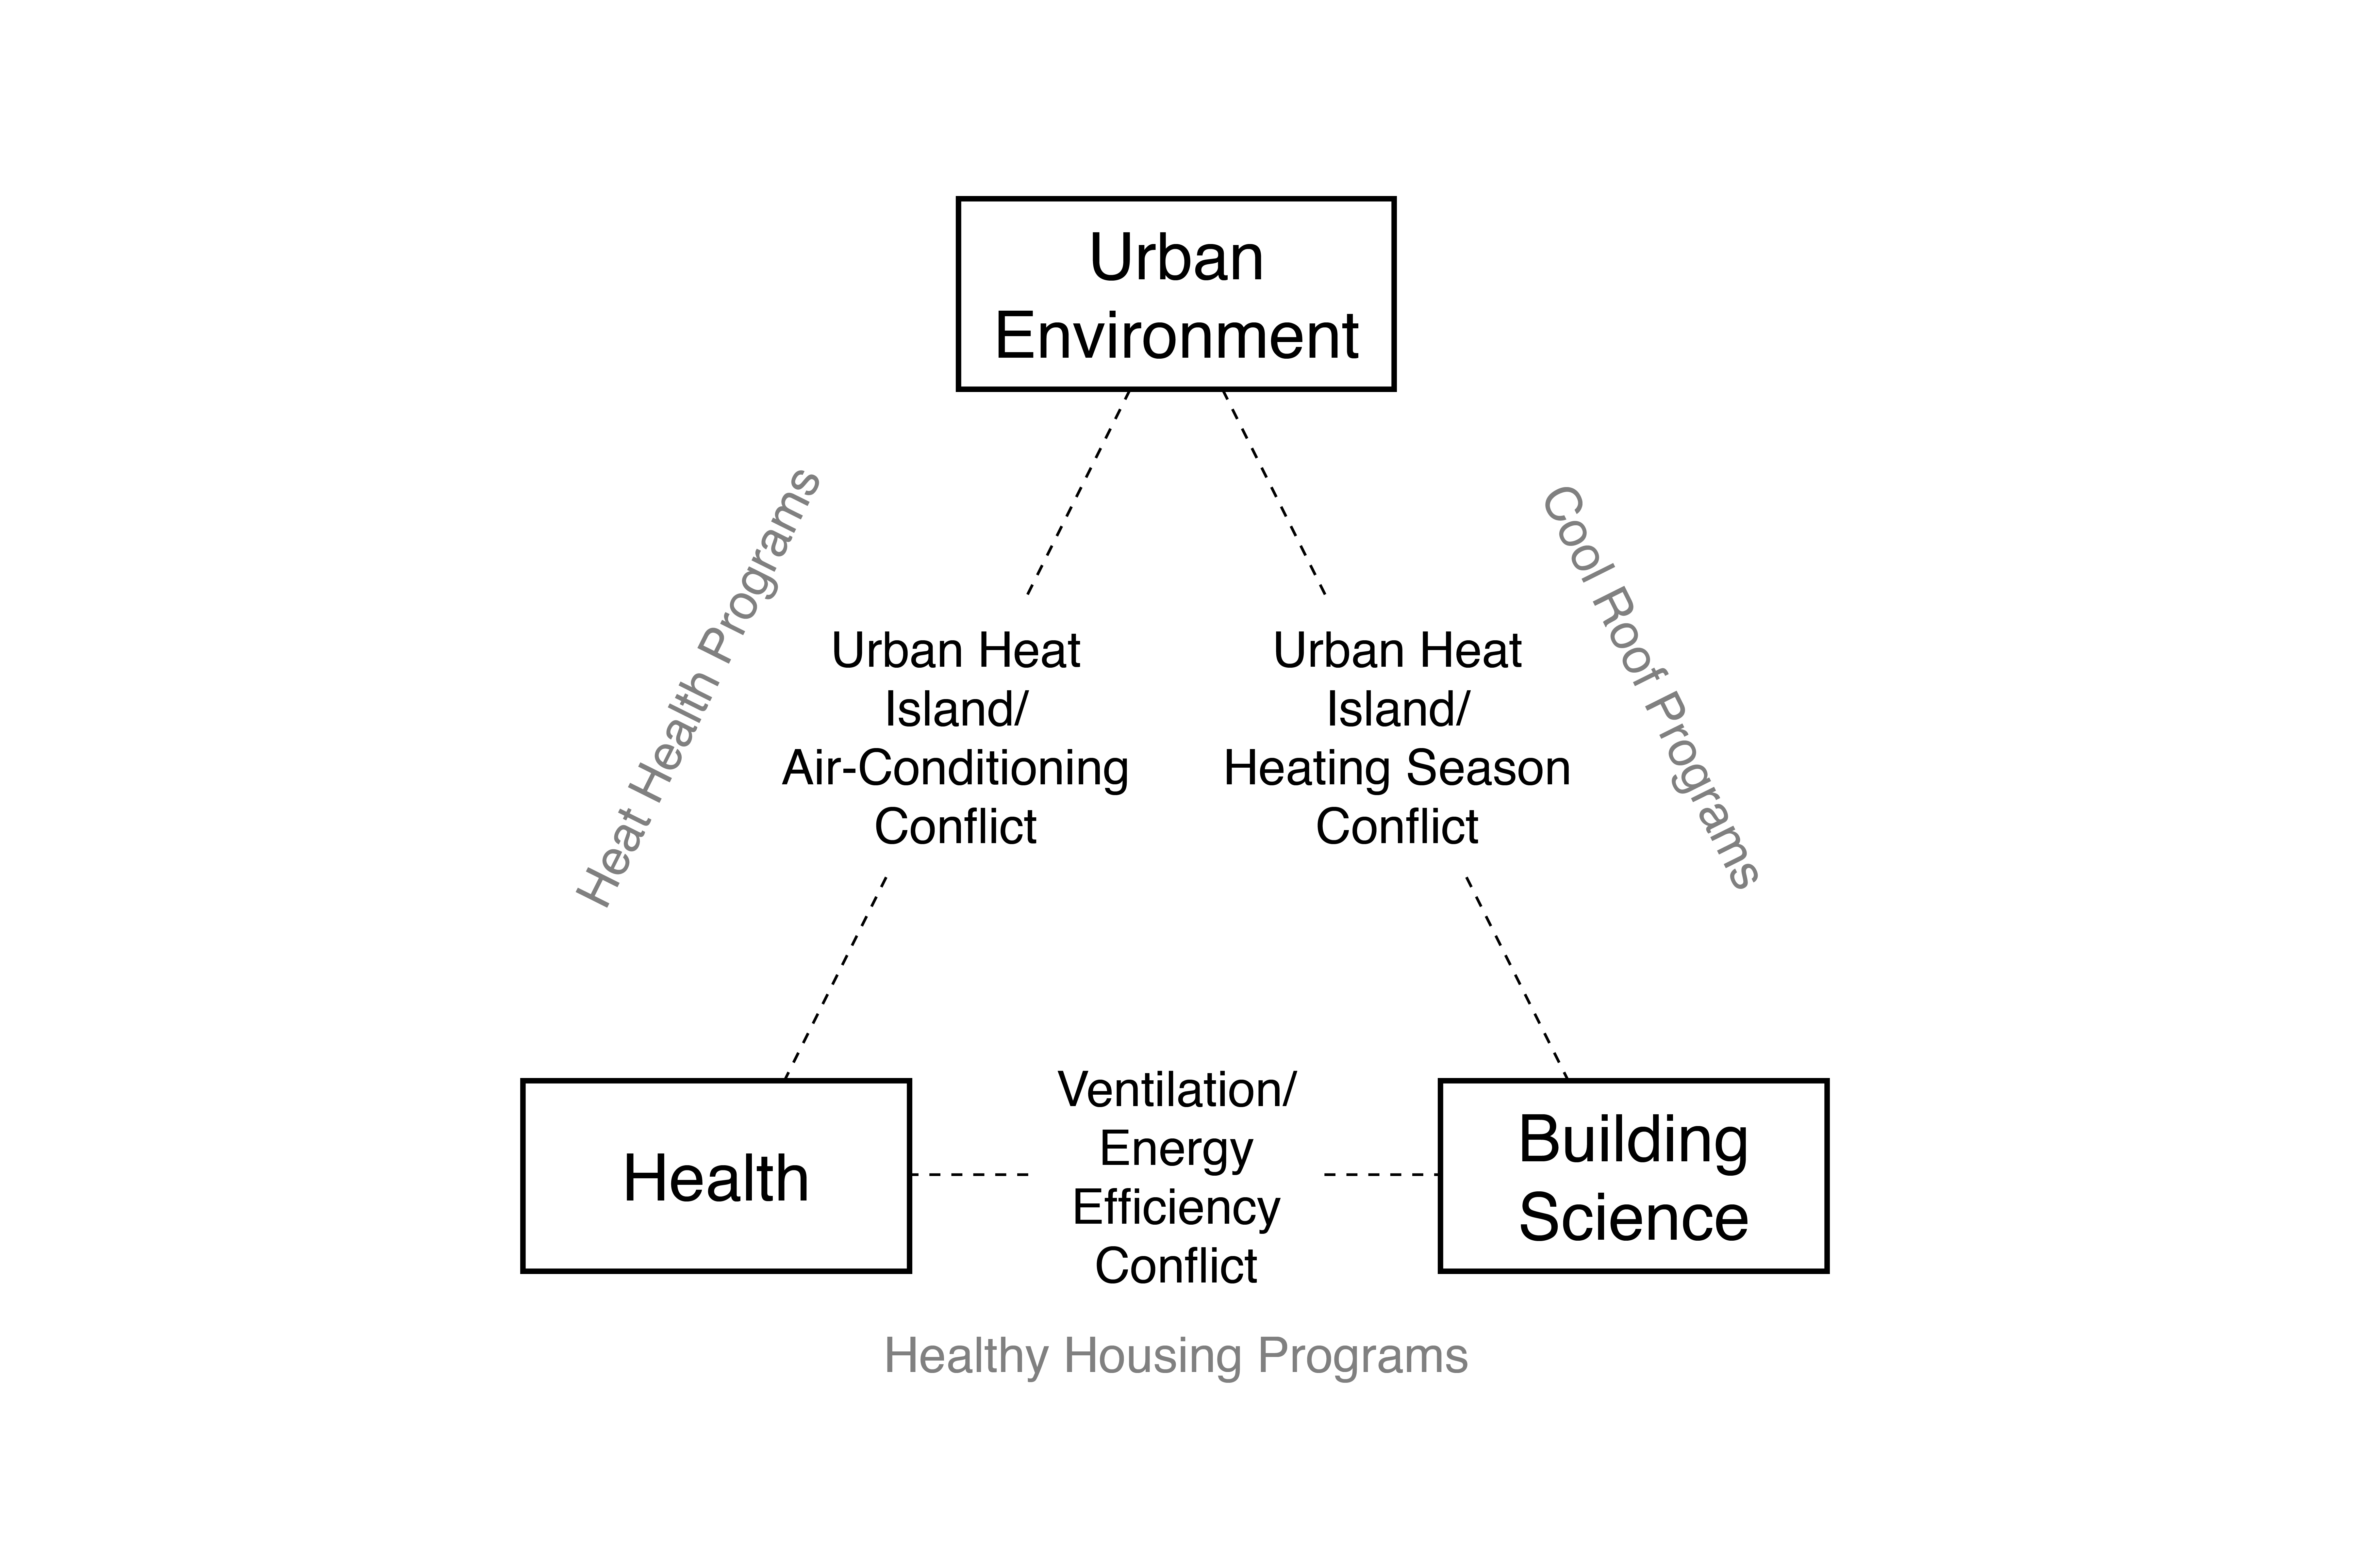 Figure 3: Conflicts among the Health, Building Science, and Urban Environmental Sectors (adapted from Campbell, 1996)